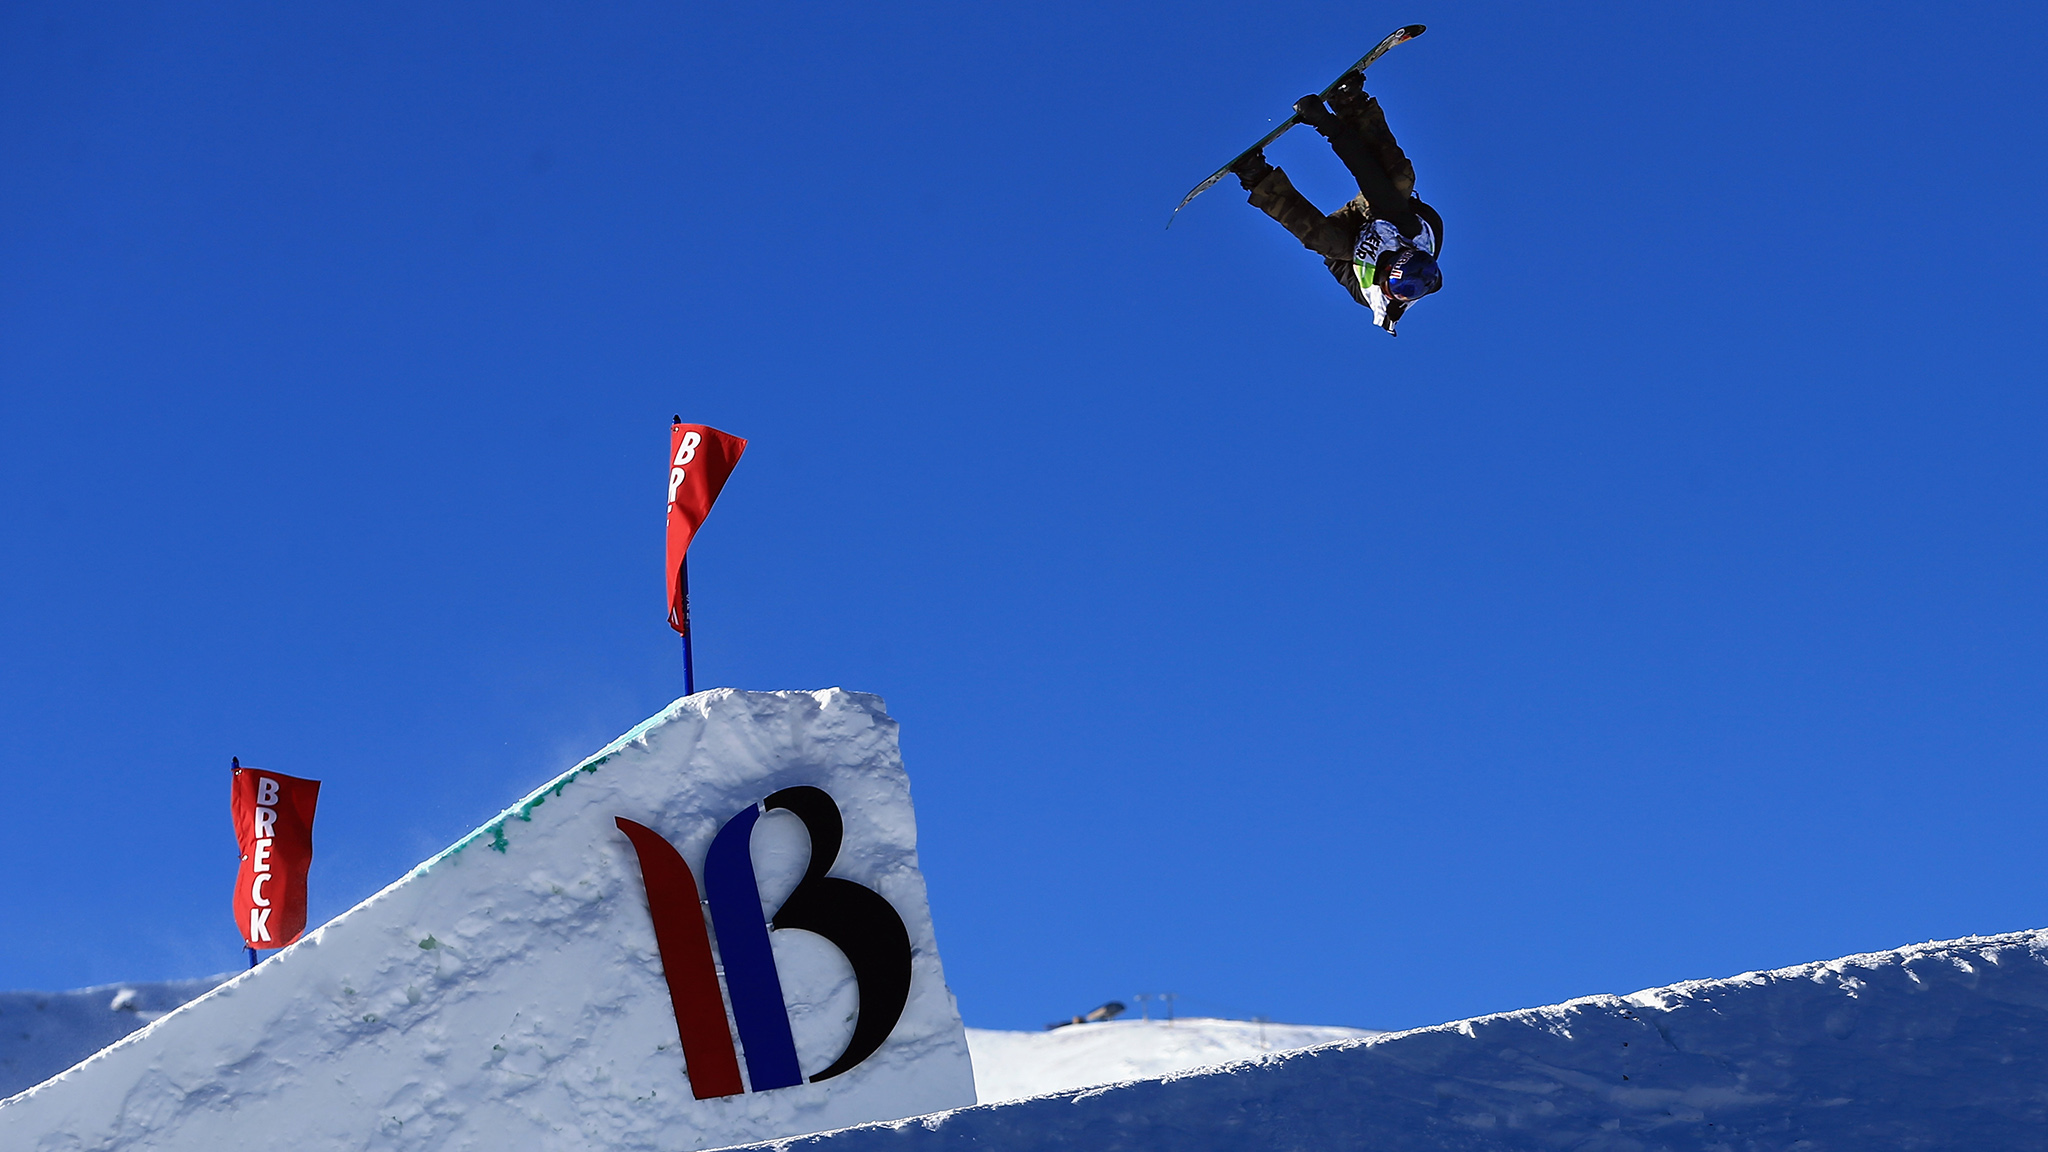 Mark McMorris, en route to first place at the Dew Tour Mountain Championships in Colo.